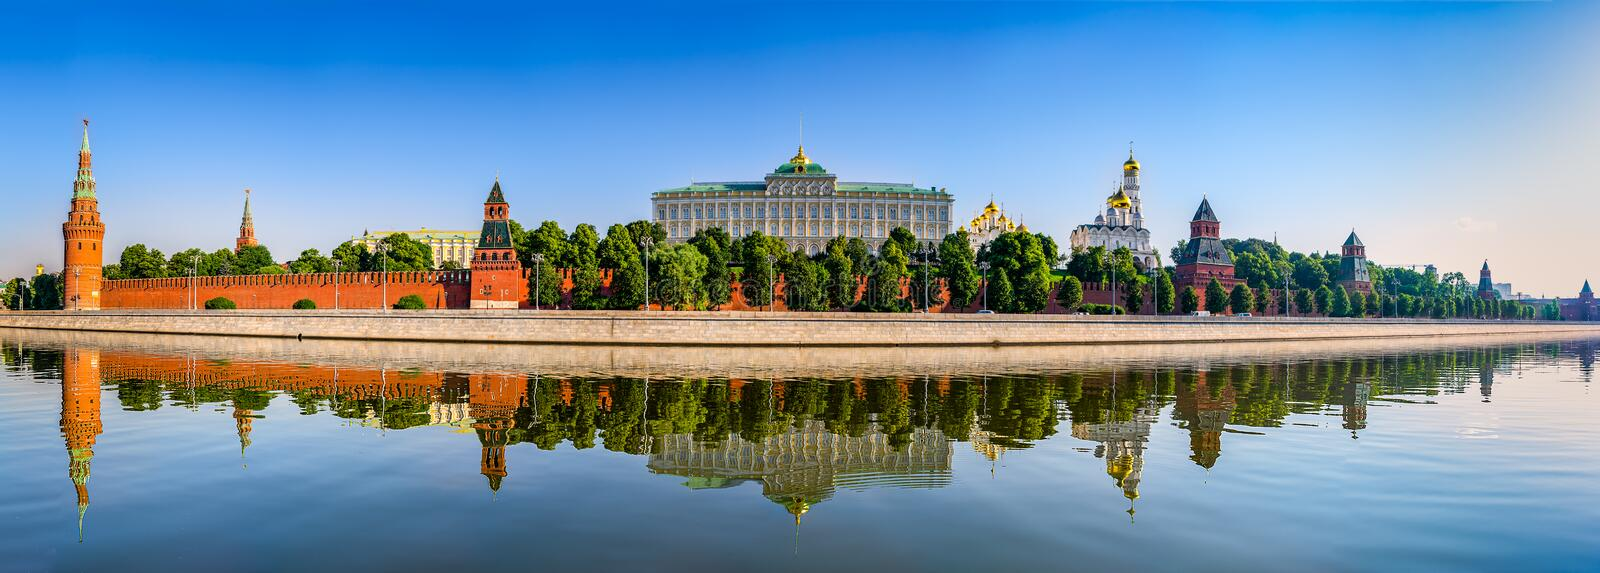 Panorama of the Moscow Kremlin. View from the Moscow river in the early morning in the summer. Russia royalty free stock photo